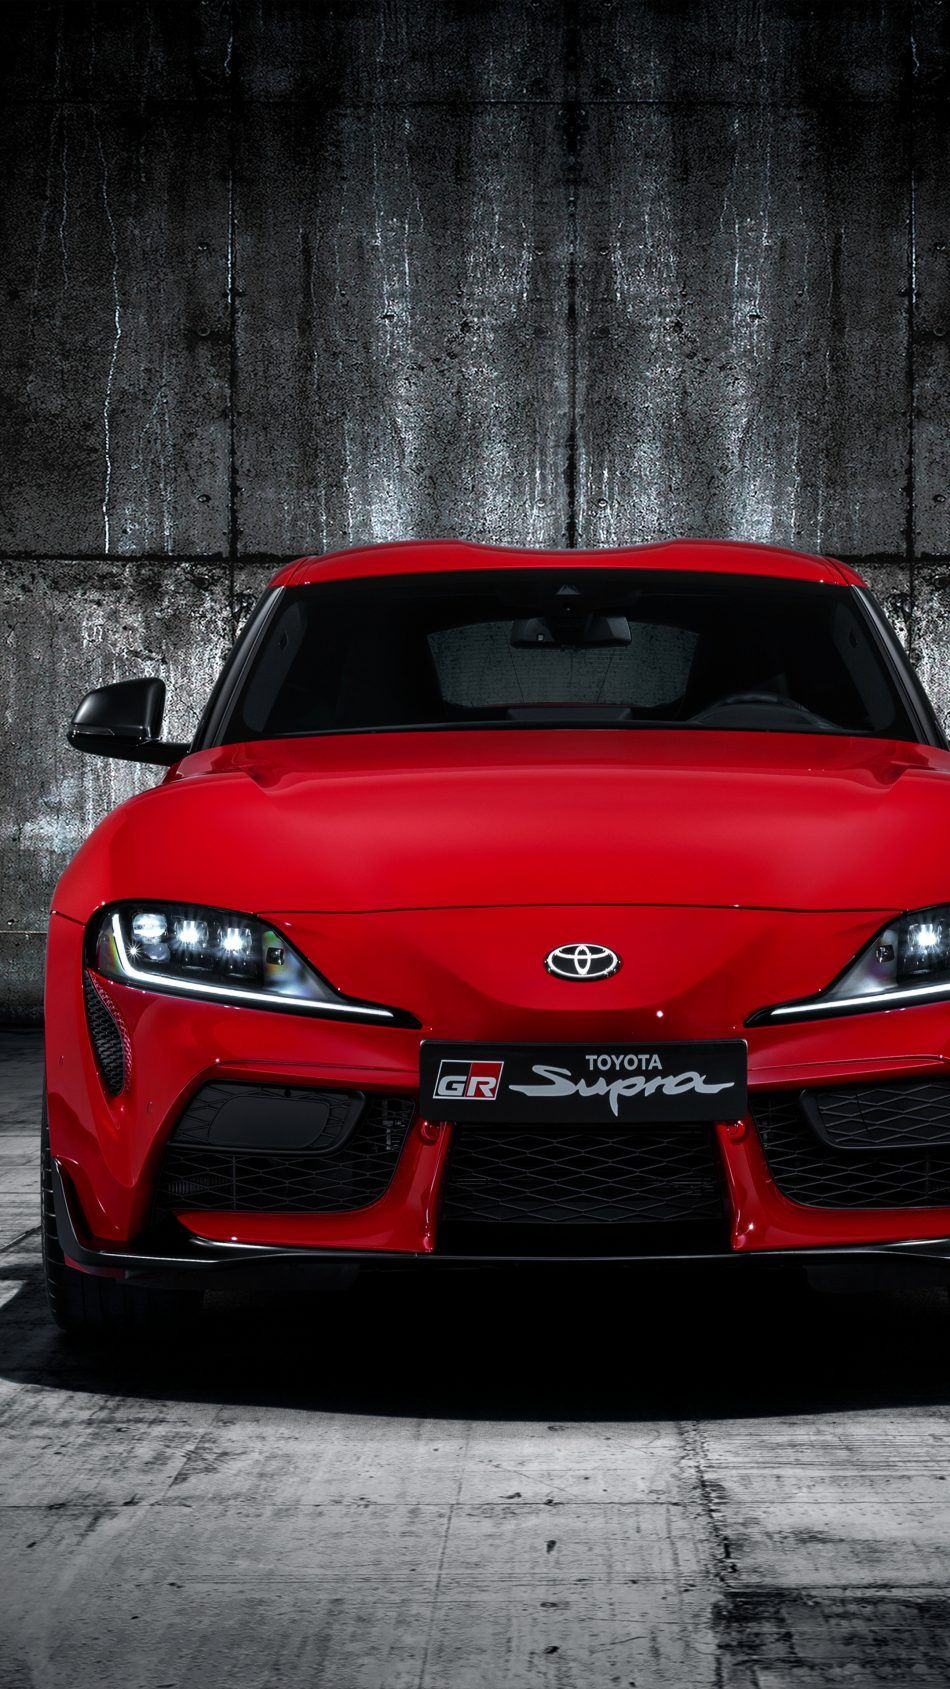 Download these free iphone wallpapers to give your phone a new look and to help you stay focused. Download Toyota Supra 2020 Iphone Wallpaper Cikimm Com